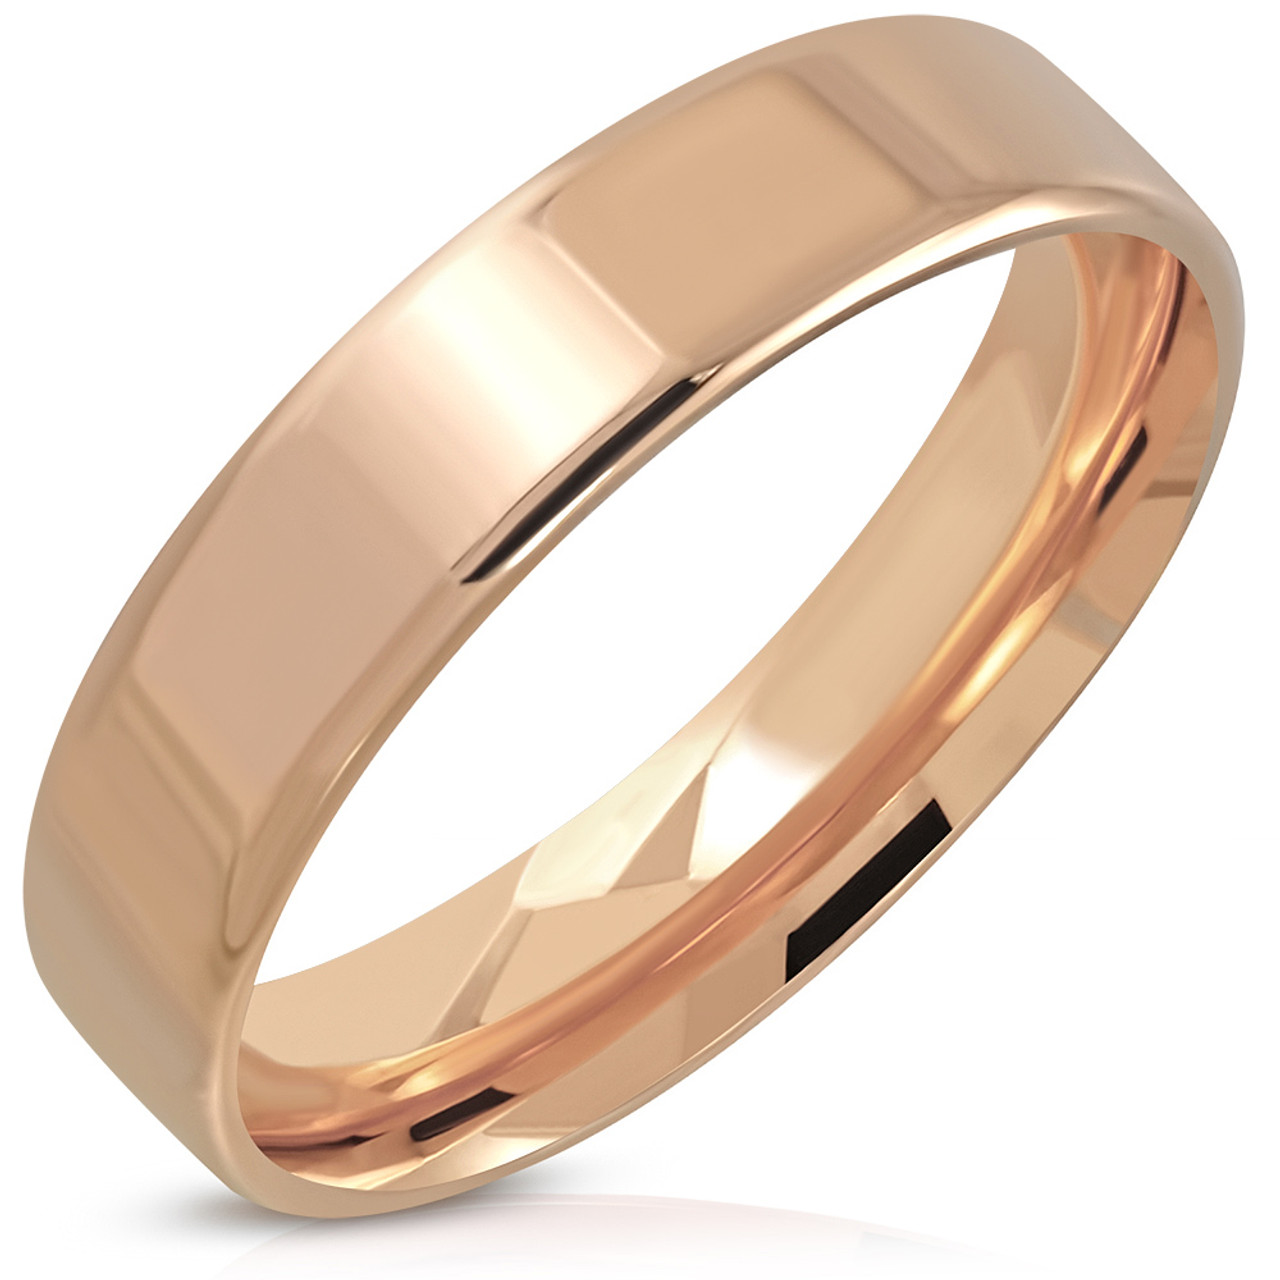 Stainless Steel Gold Color Plated Plain Comfort Fit Half-Round Wedding Band Ring with Clear CZ